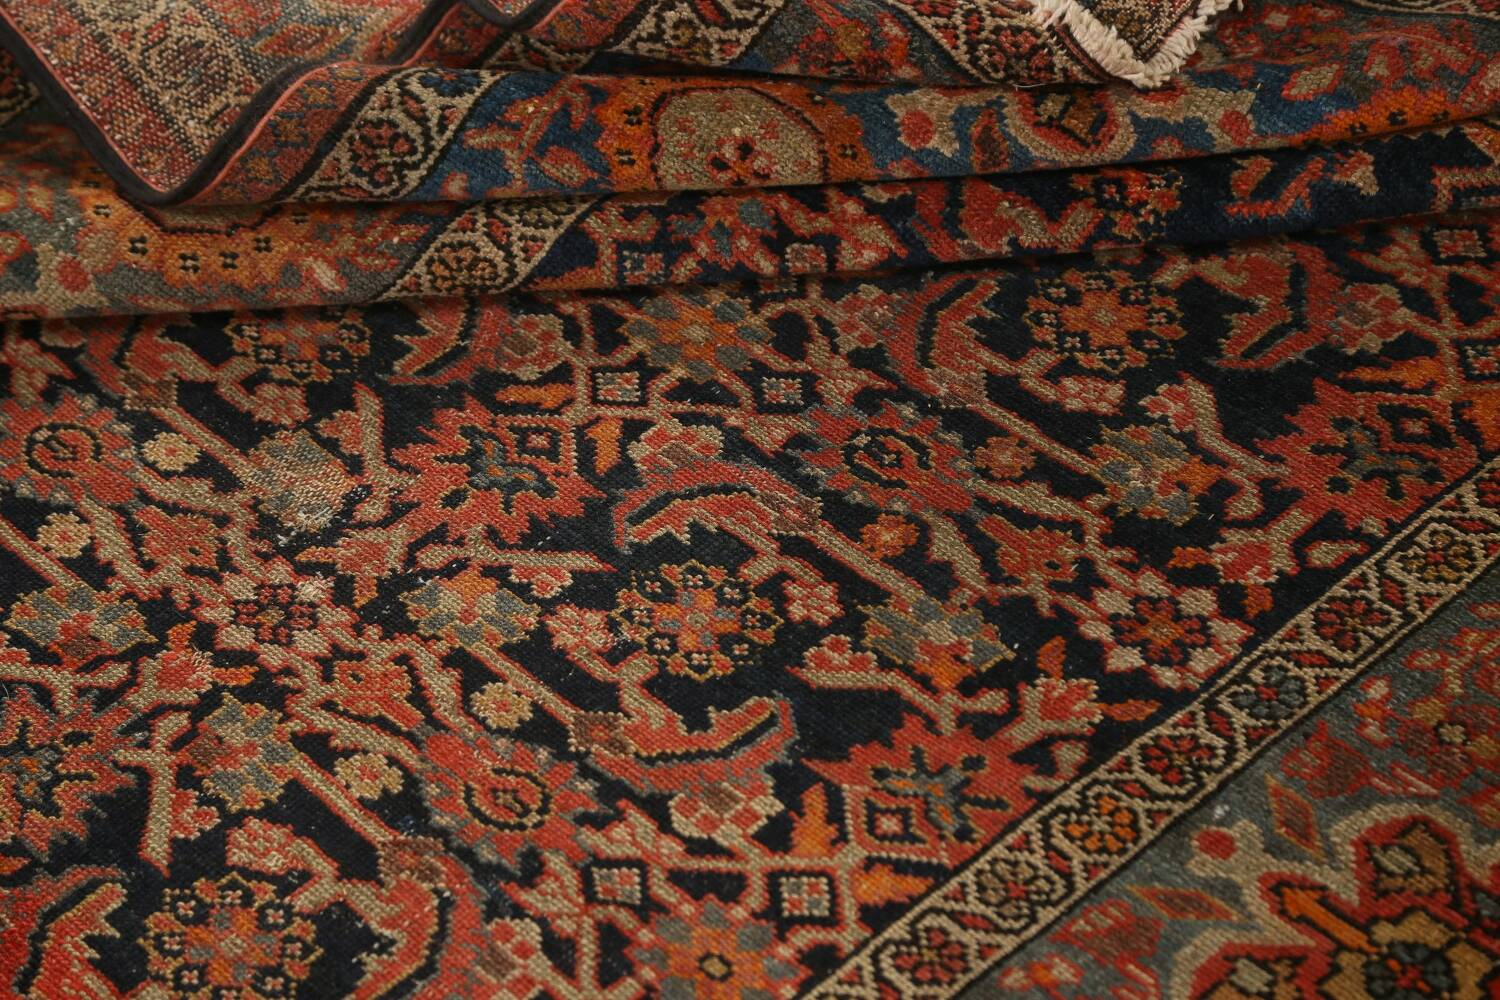 Pre-1900 Antique Vegetable Dye Malayer Persian Area Rug 4x6 image 16